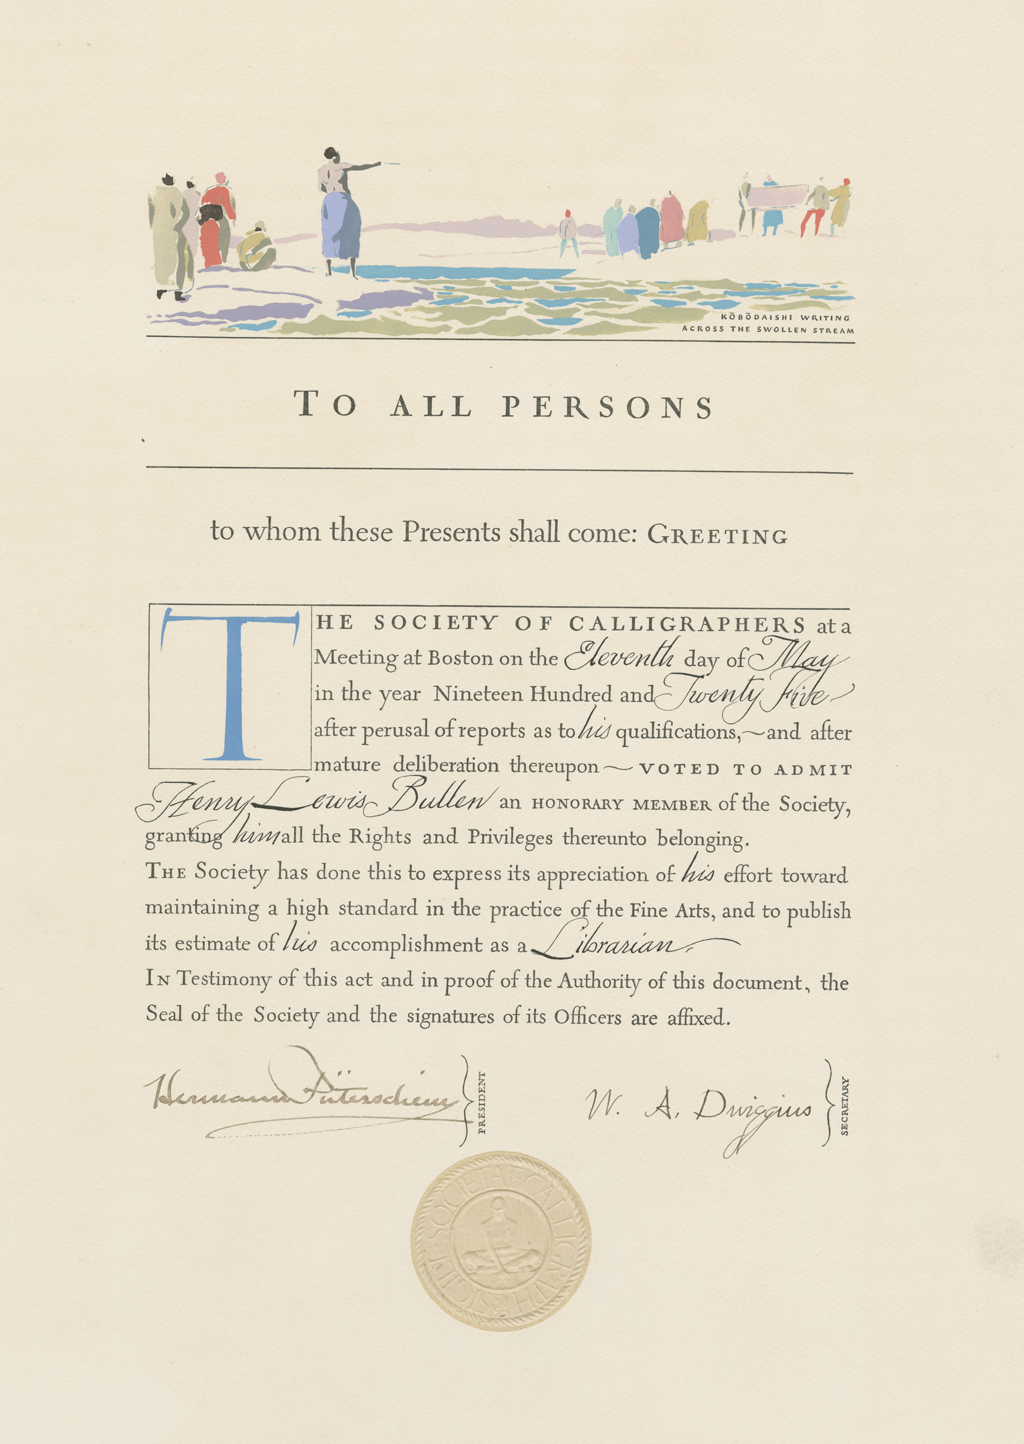 Society of Calligraphers certificate of Honorary Membership for Henry Lewis Bullen (1925). Design, illustration and calligraphy by W.A. Dwiggins.